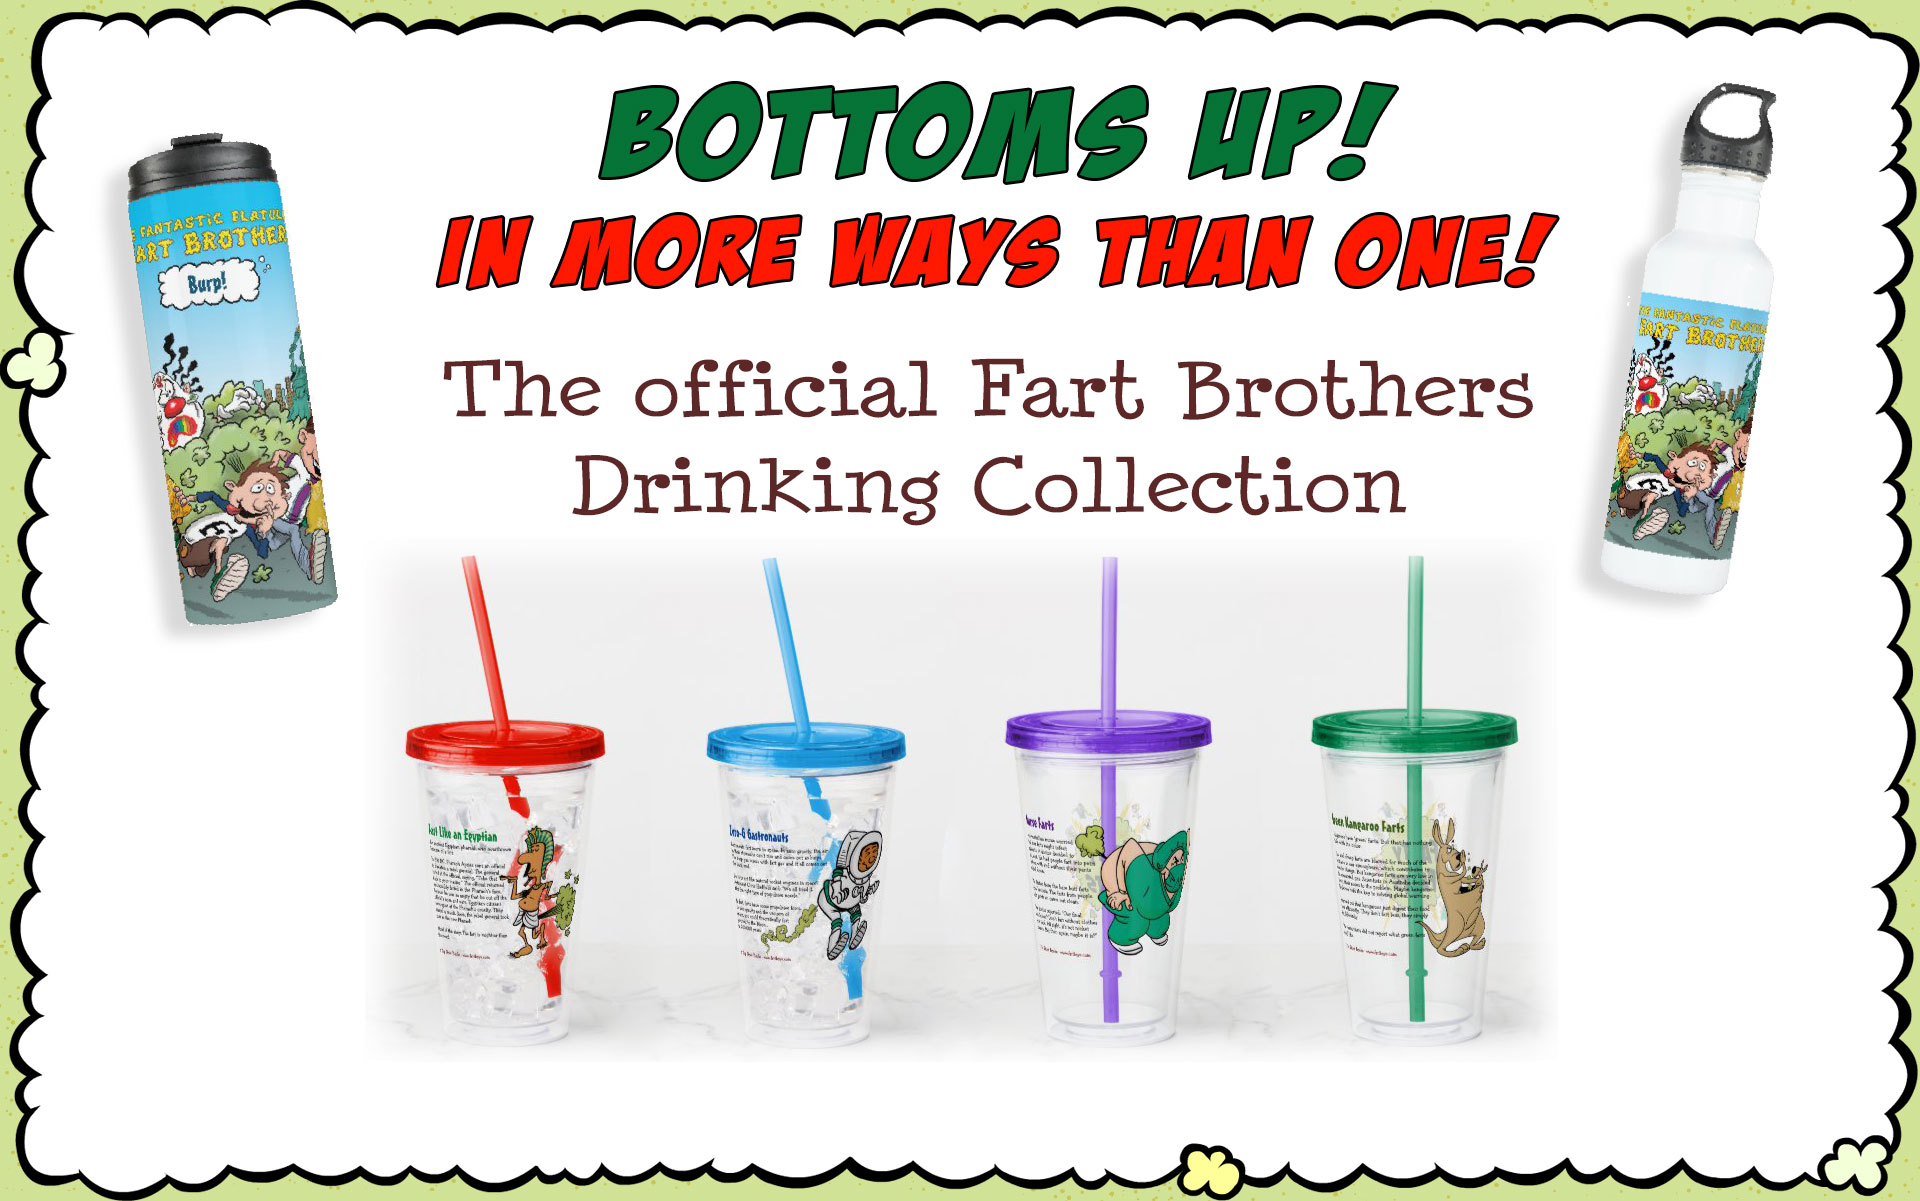 Fart Brothers Drink Collection